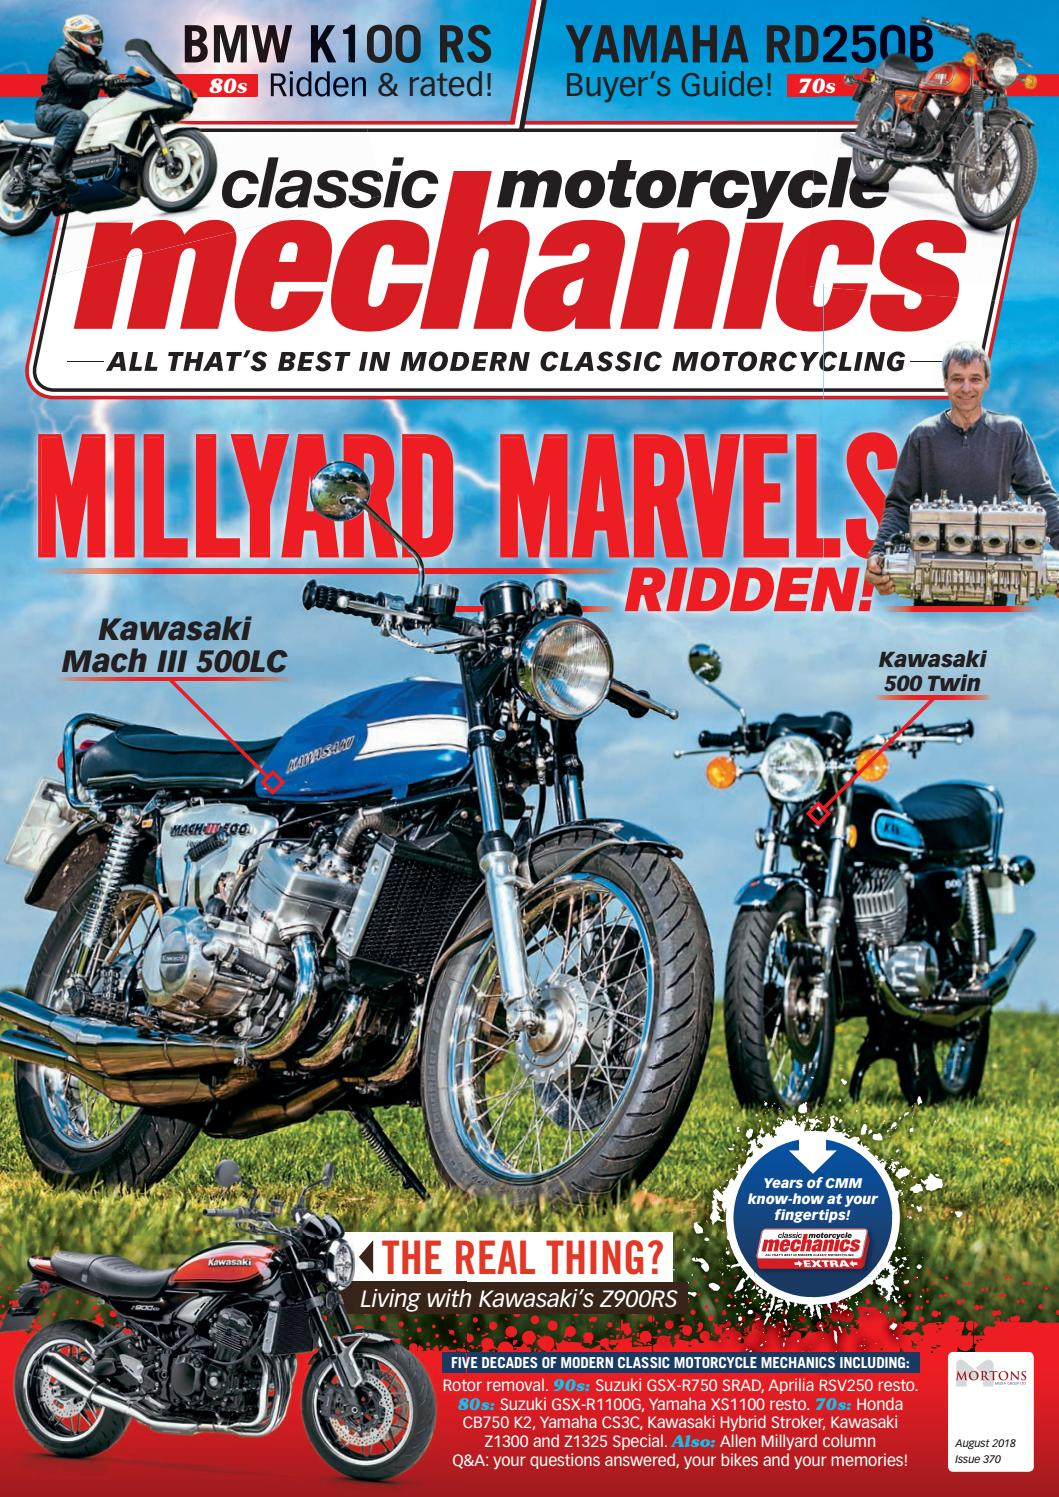 Classic Motorcycle Mechanics August 2018 by Mortons Media